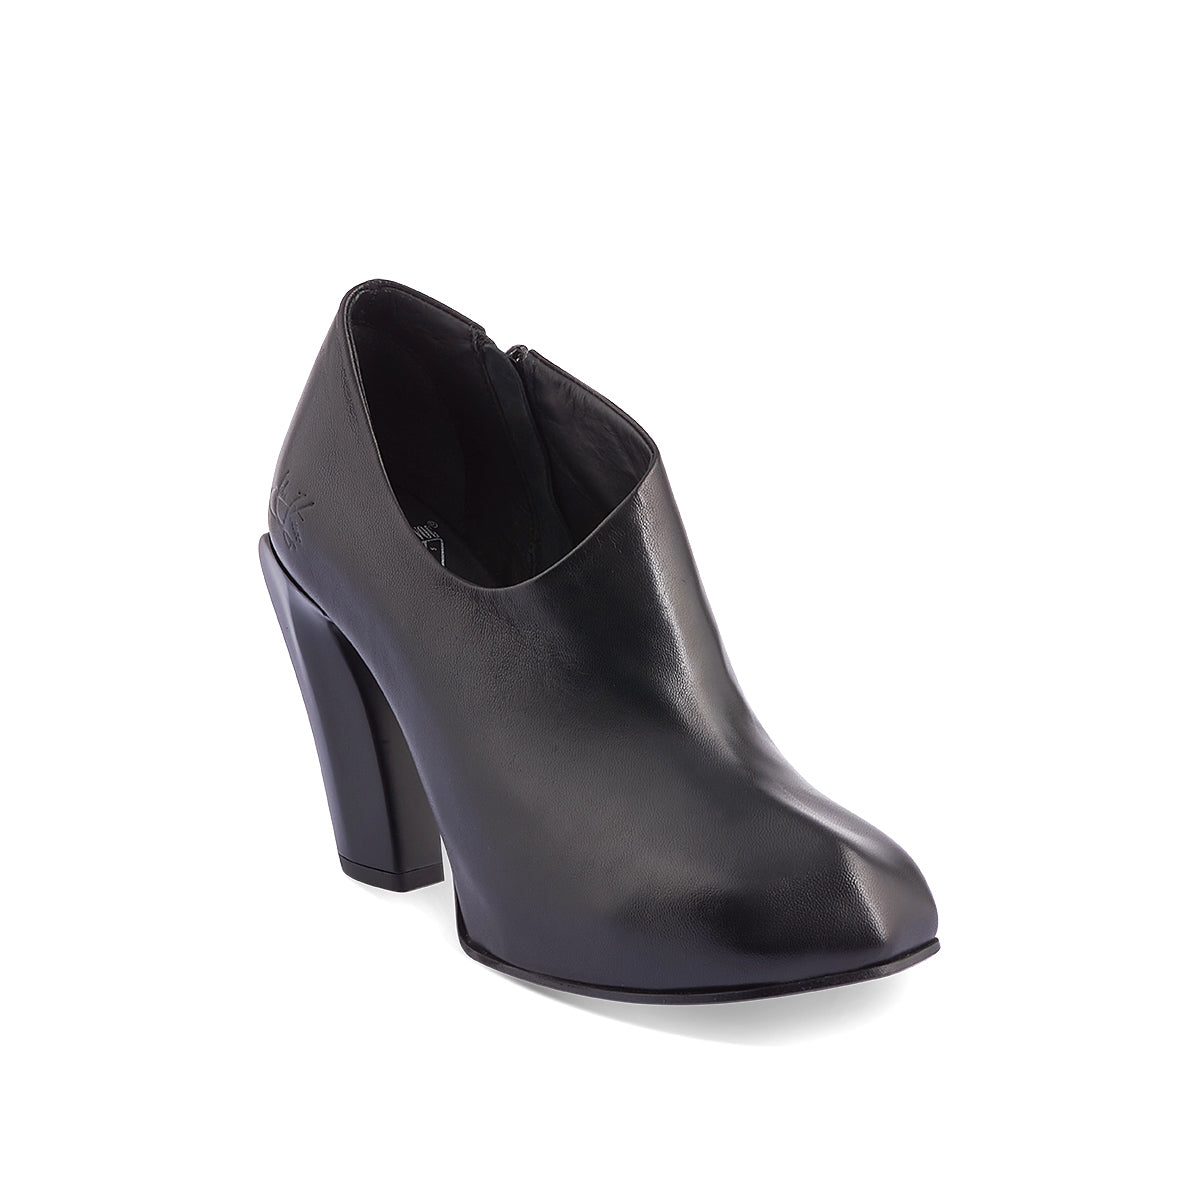 Designed with an asymmetric toe, the new Sable from John Fluevog has beautiful lines and a distinctively modern look. Sable has a concealed, leather-wrapped 2cm platform underfoot for extra stability, while the smooth leather upper embraces the foot and secures with a subtle inner zip.